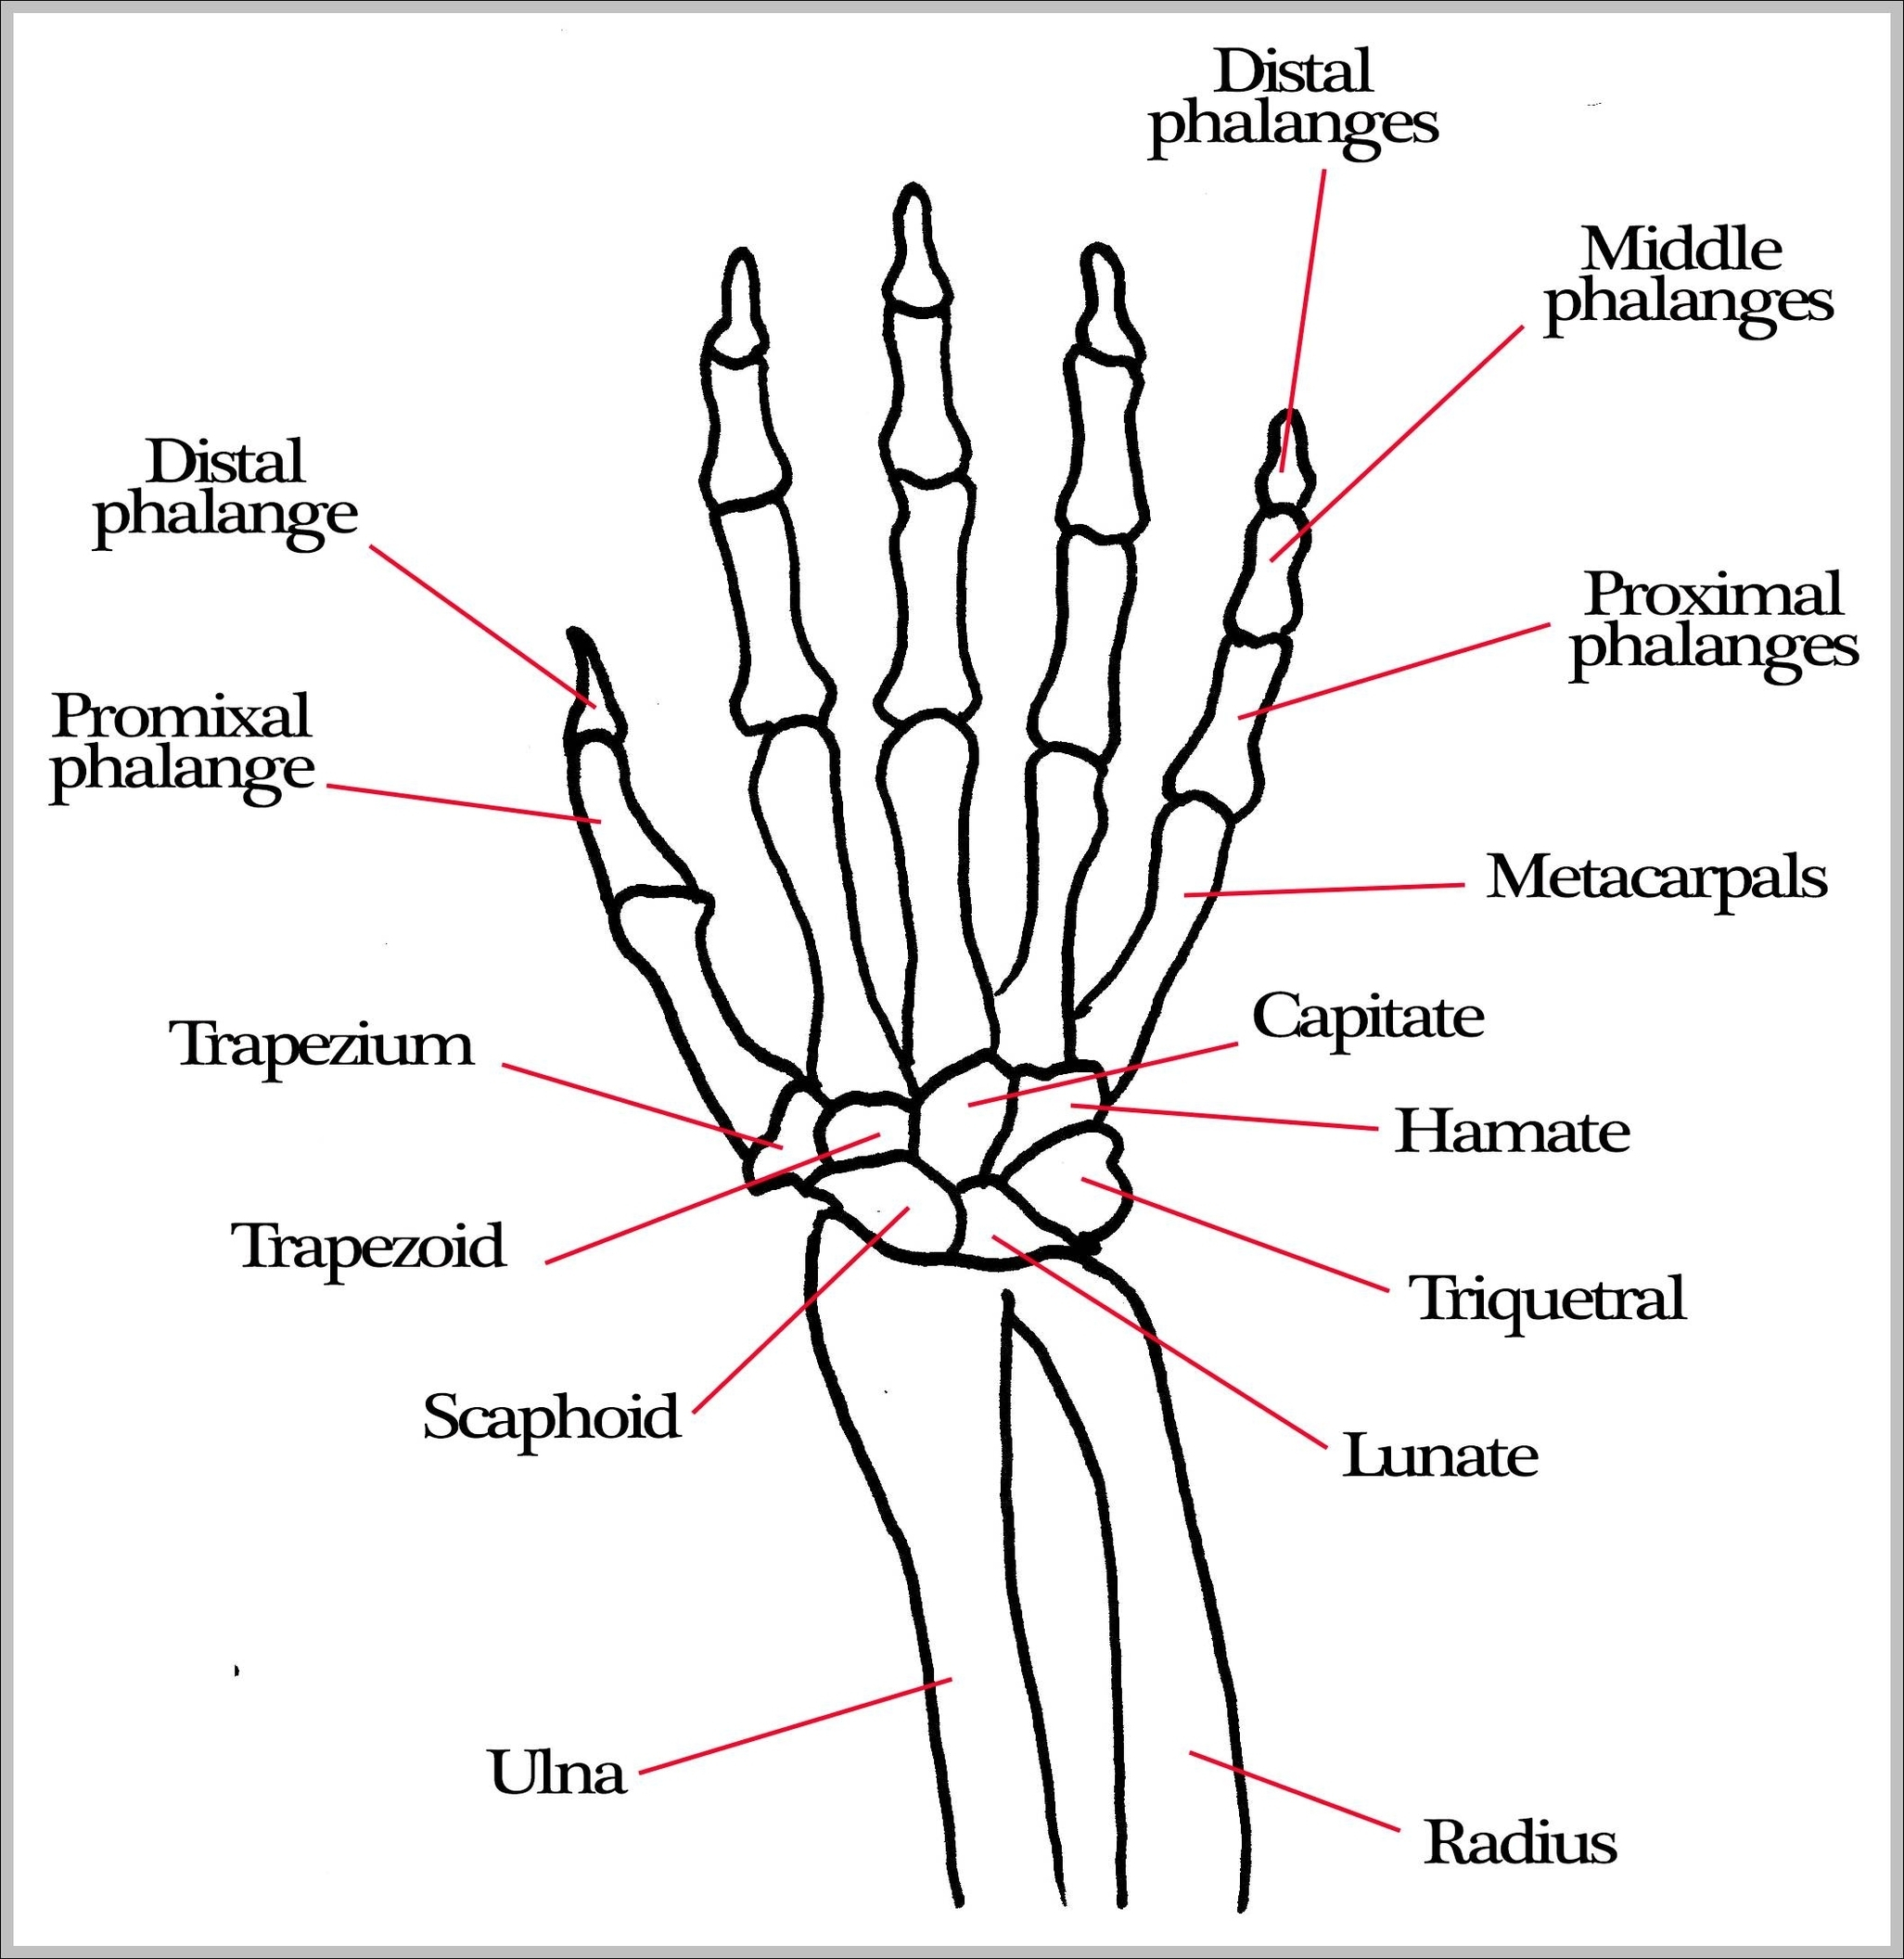 skeleton hand drawing on hand at getdrawings com free for personal rh getdrawings com Skeleton Hand Joints Diagram Skeleton Hand Joints Diagram